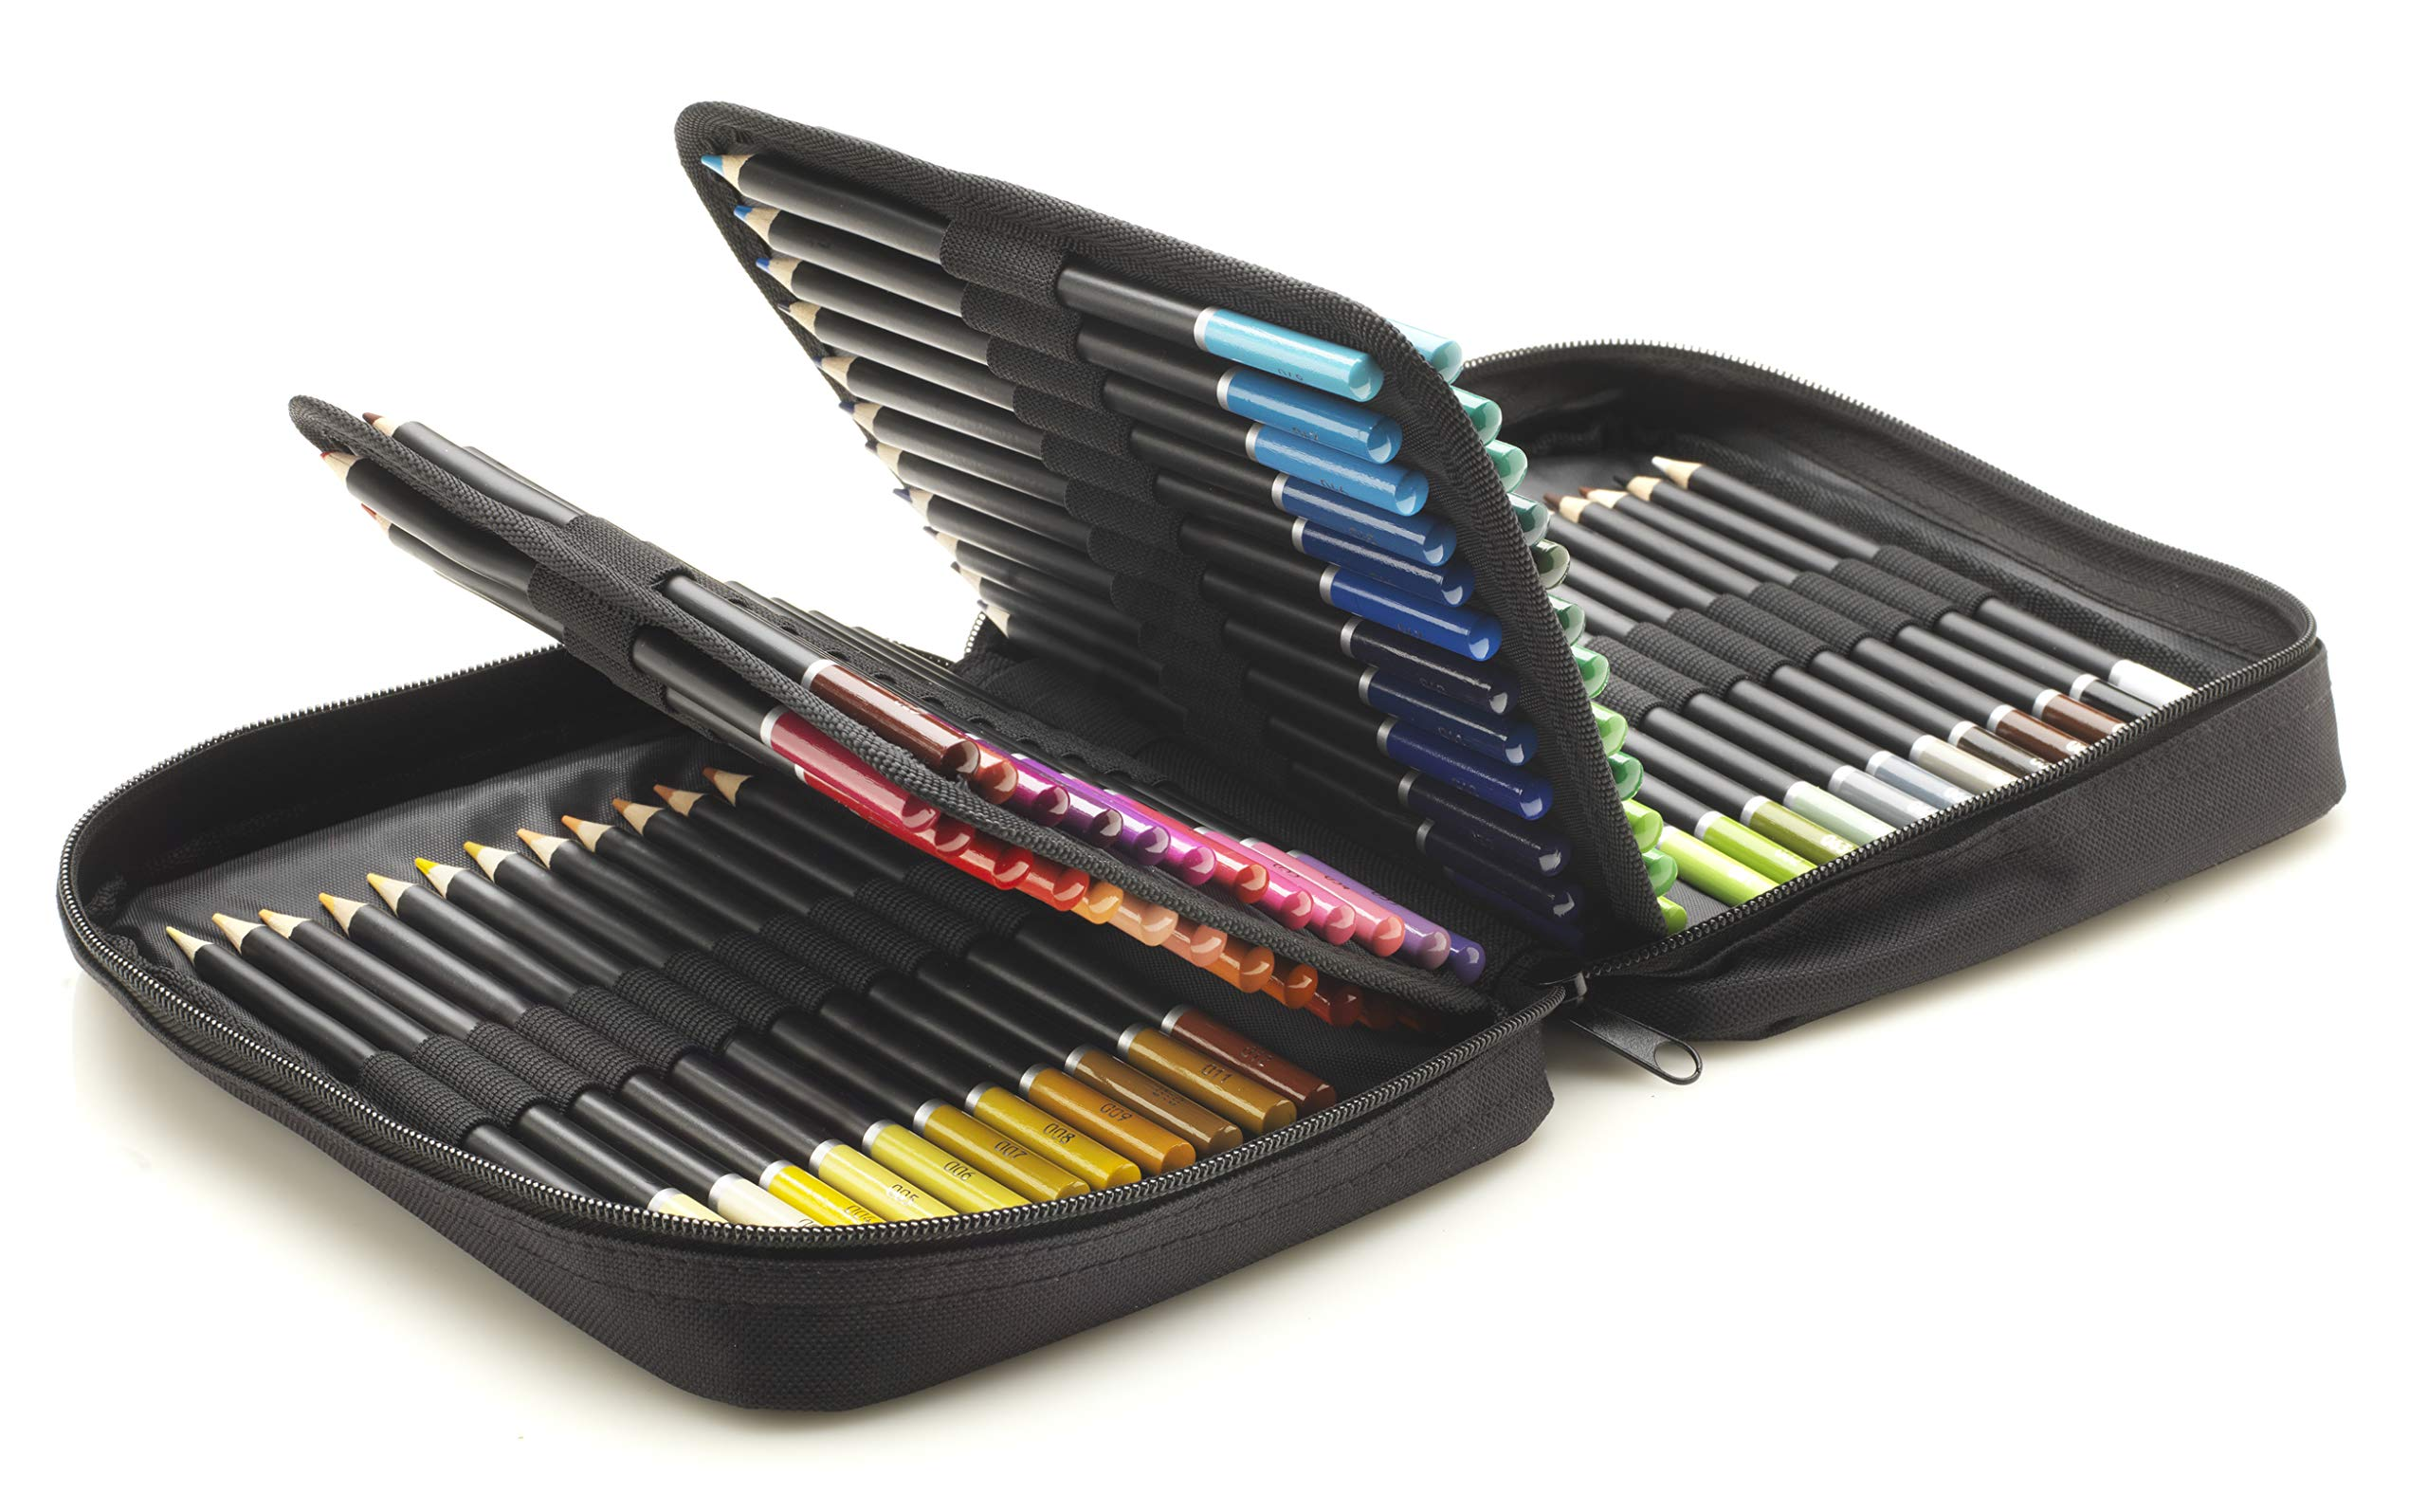 Castle Art Supplies 72 Colored Pencils Zip-Up Set - Easy Zipper Case to Store and Protect Your Coloring Pencils by Castle Art Supplies